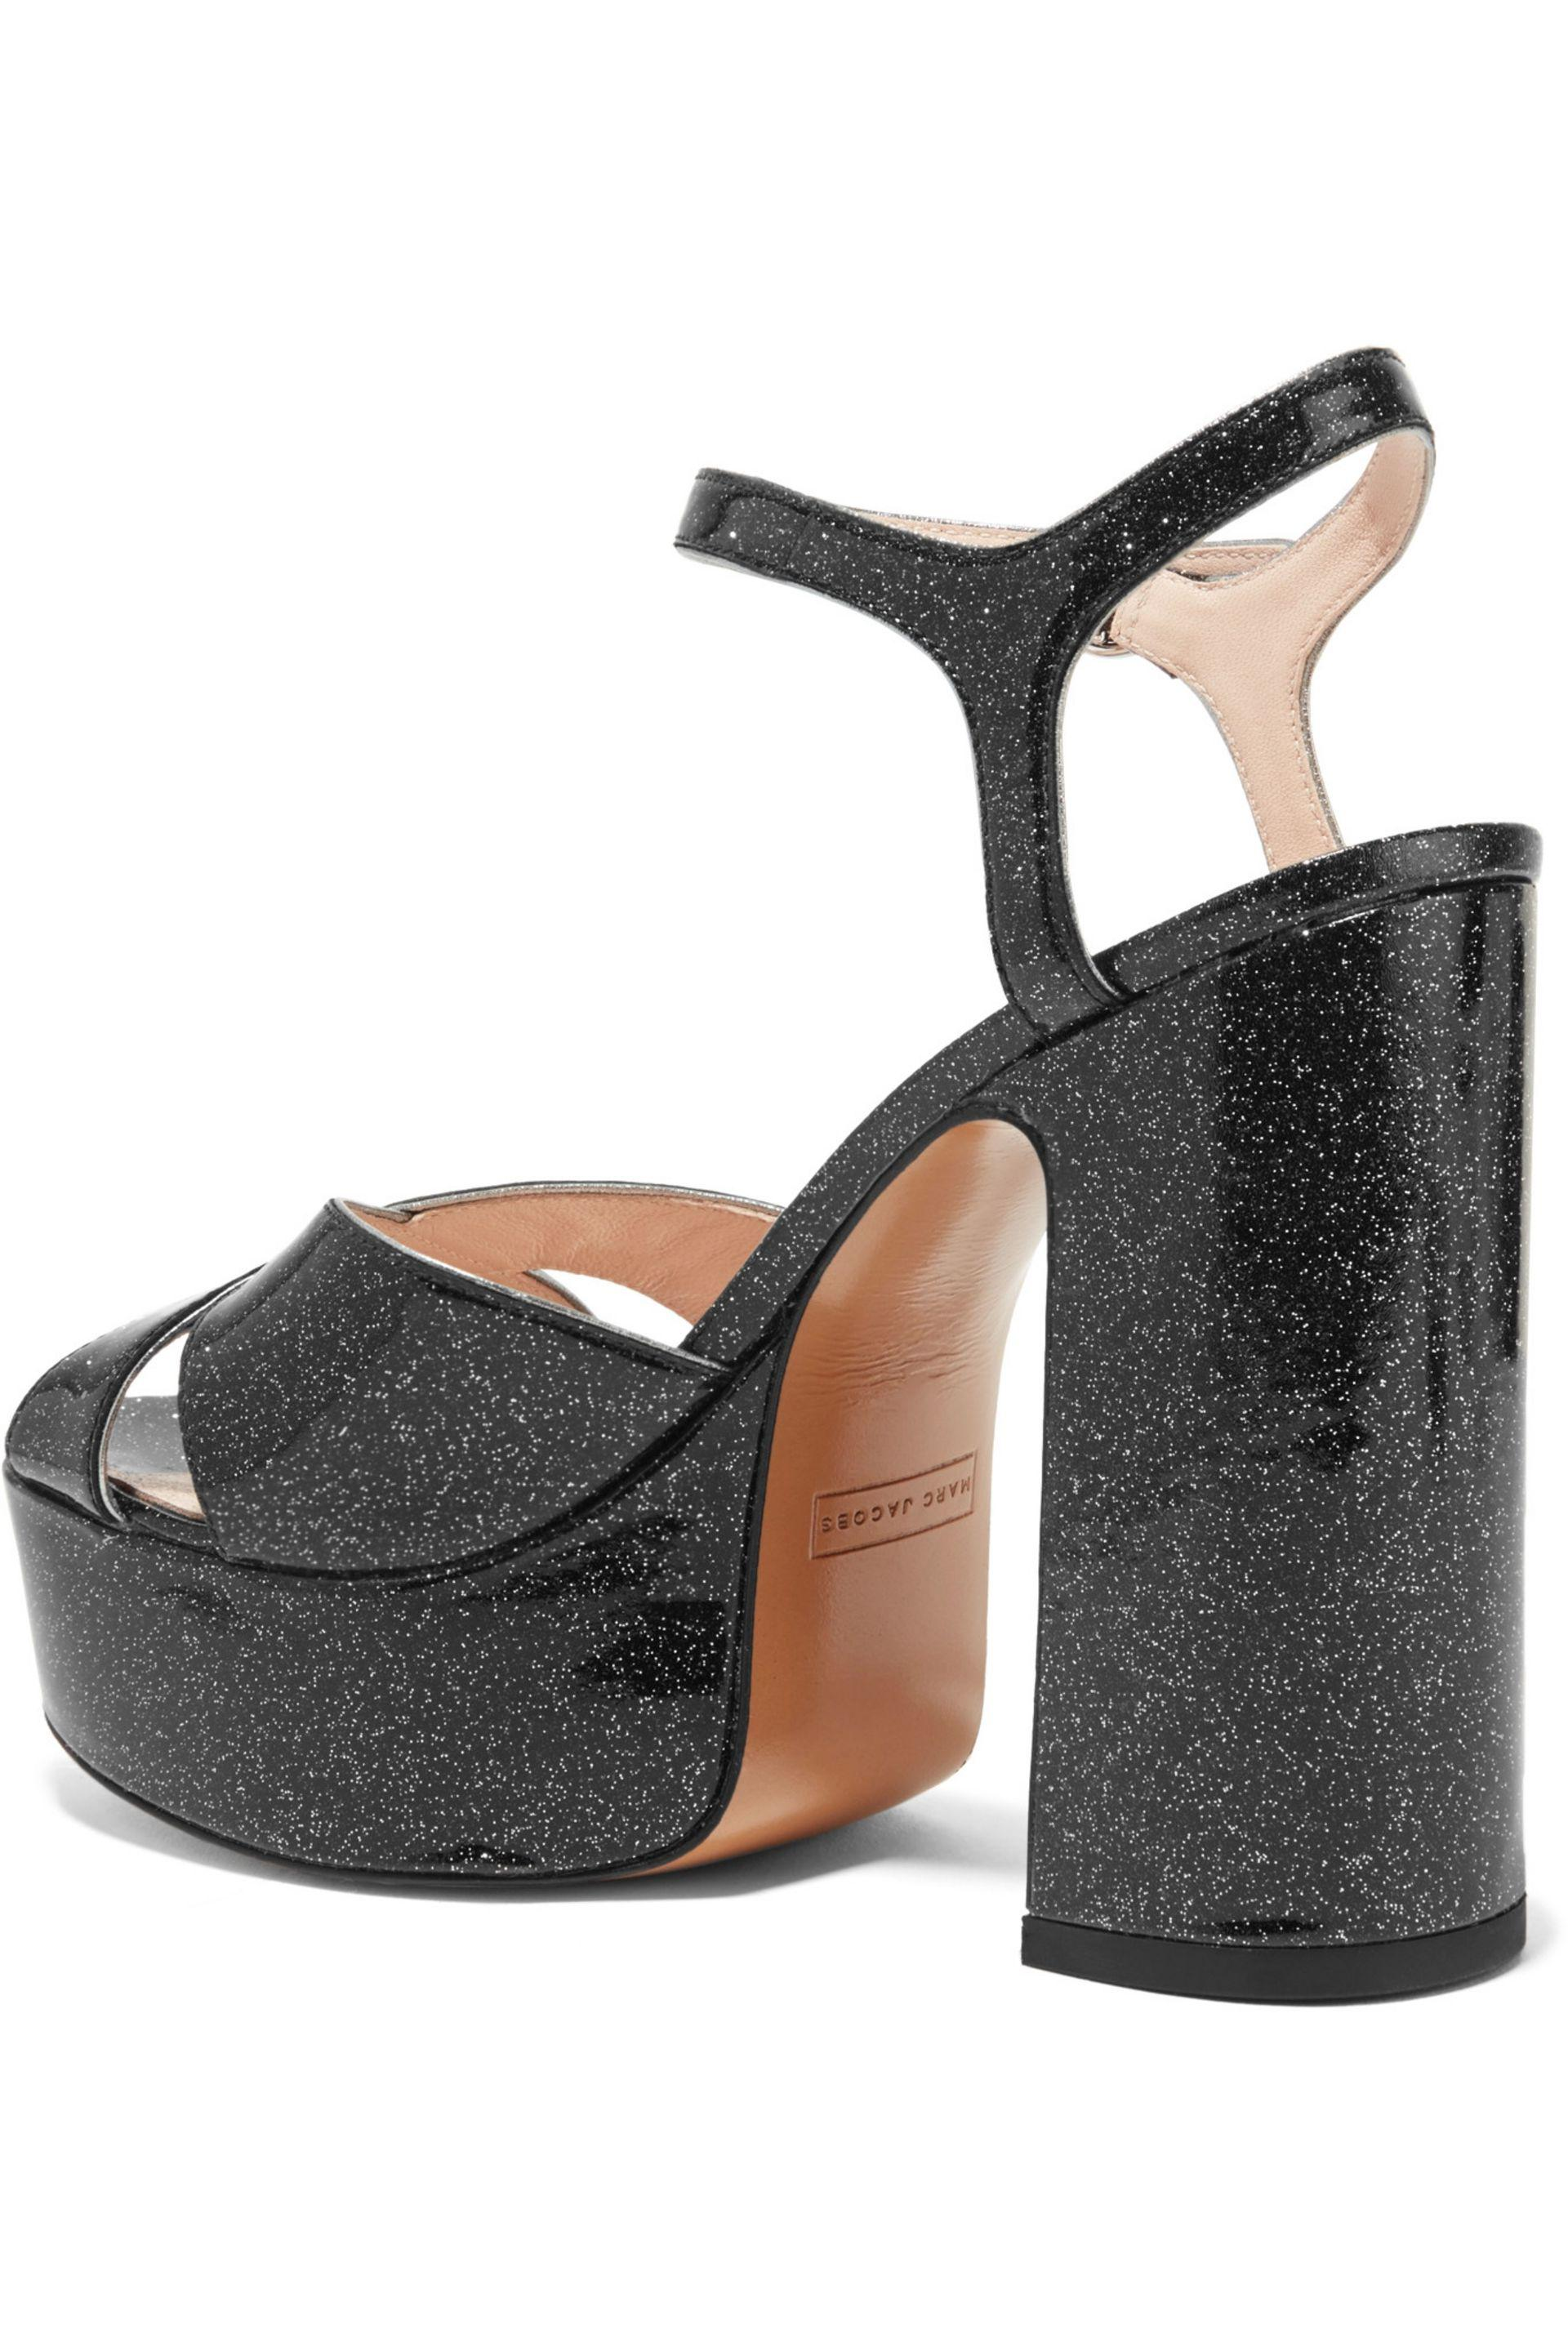 Marc Jacobs - Black Lust Glittered Leather Platform Sandals - Lyst. View  fullscreen